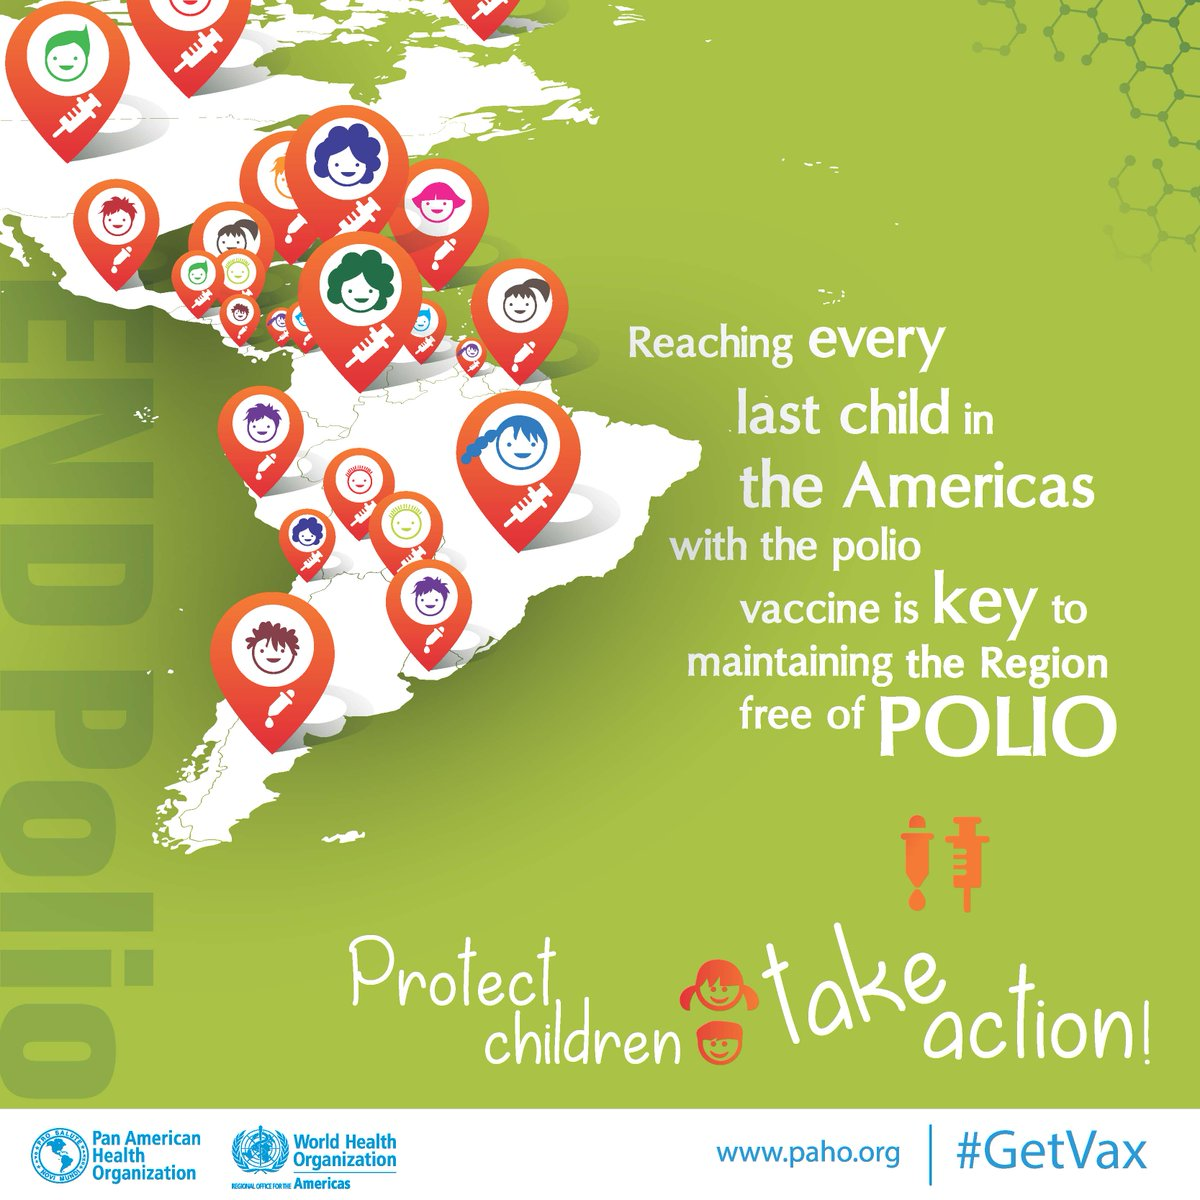 👩🏿⚕️👨🏽⚕️👩🏼⚕️ who climb mountains 🏔, cross rivers 🌊 and don't stop until every last child is protected from polio with vaccination.   #EndPolio #GetVax #HealthForAll